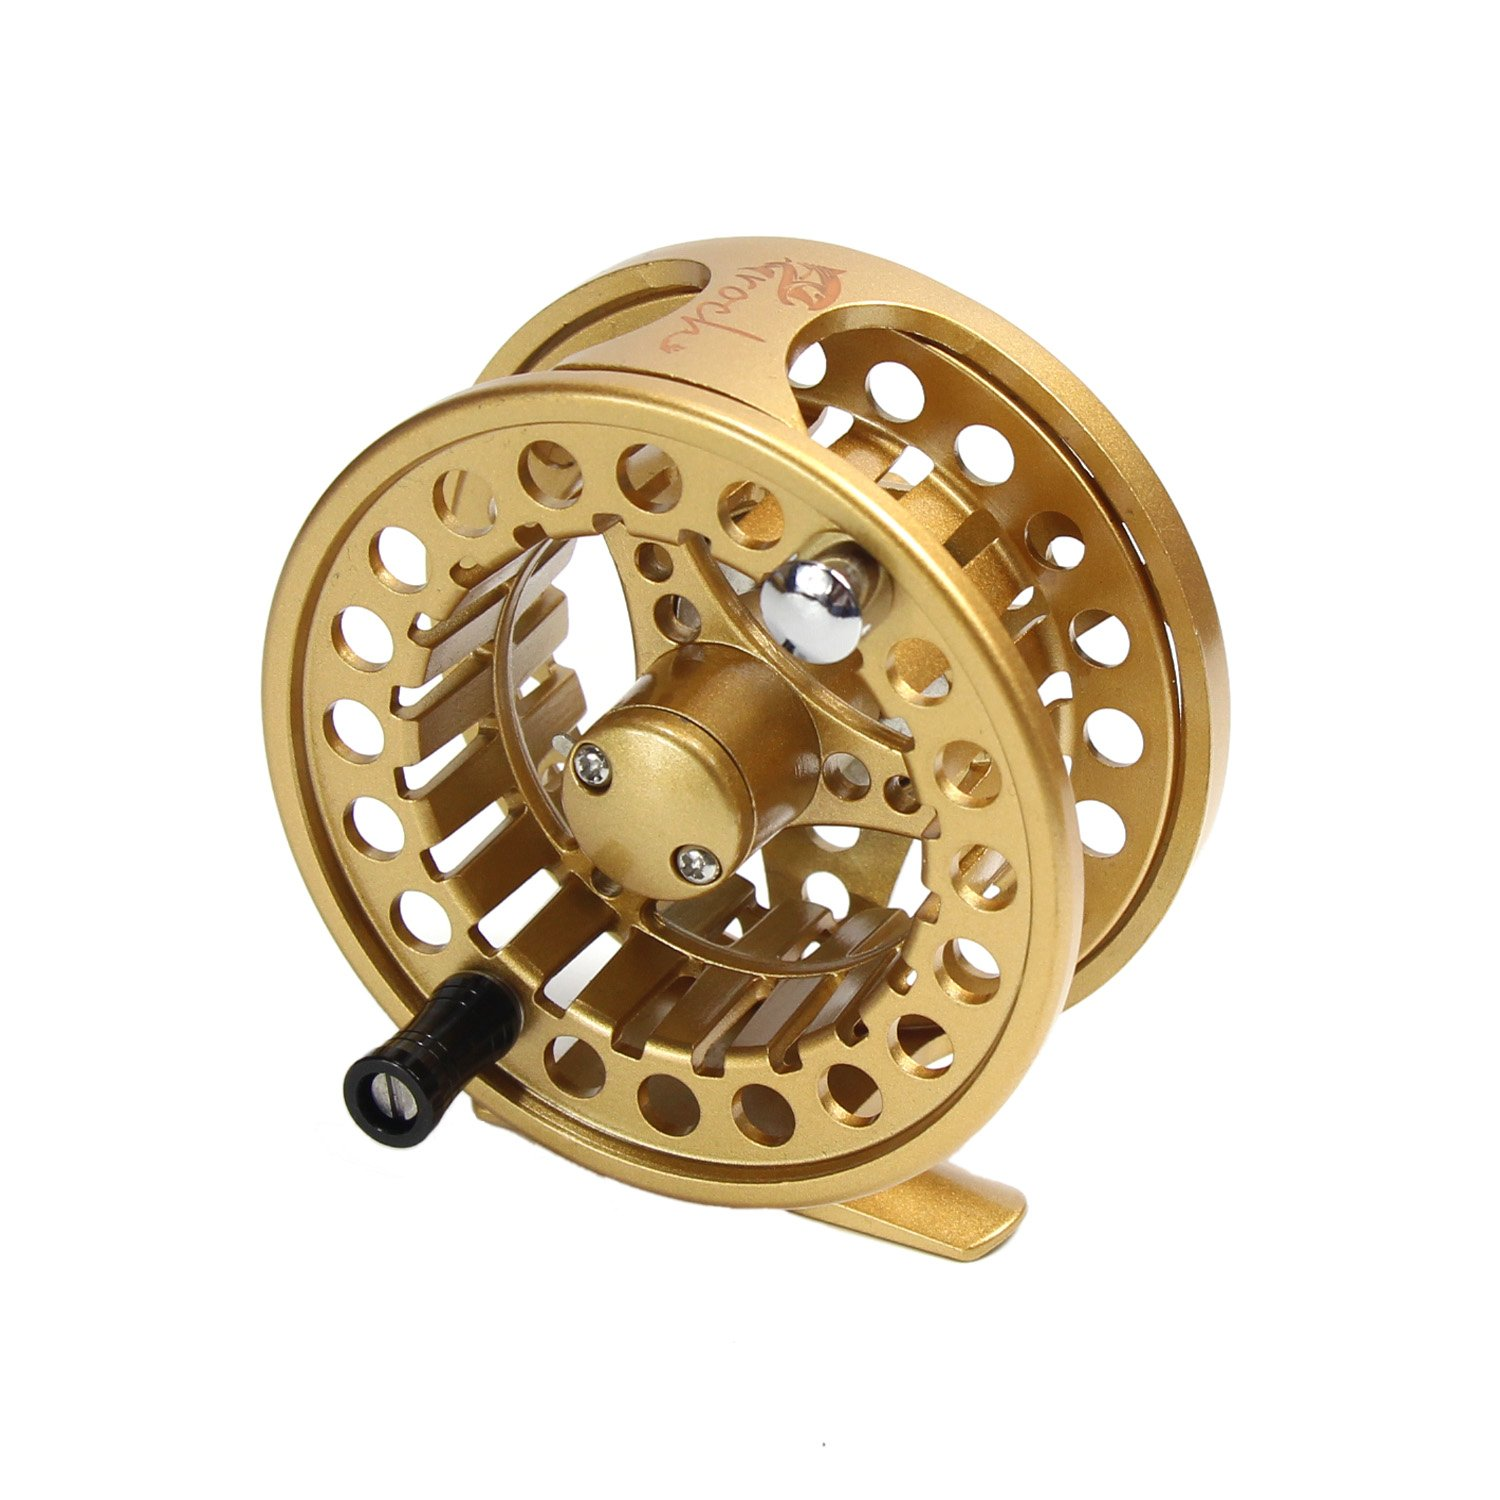 3 4wt fly reel cnc machined aluminum micro adjusting fly for Fly fishing reels ebay